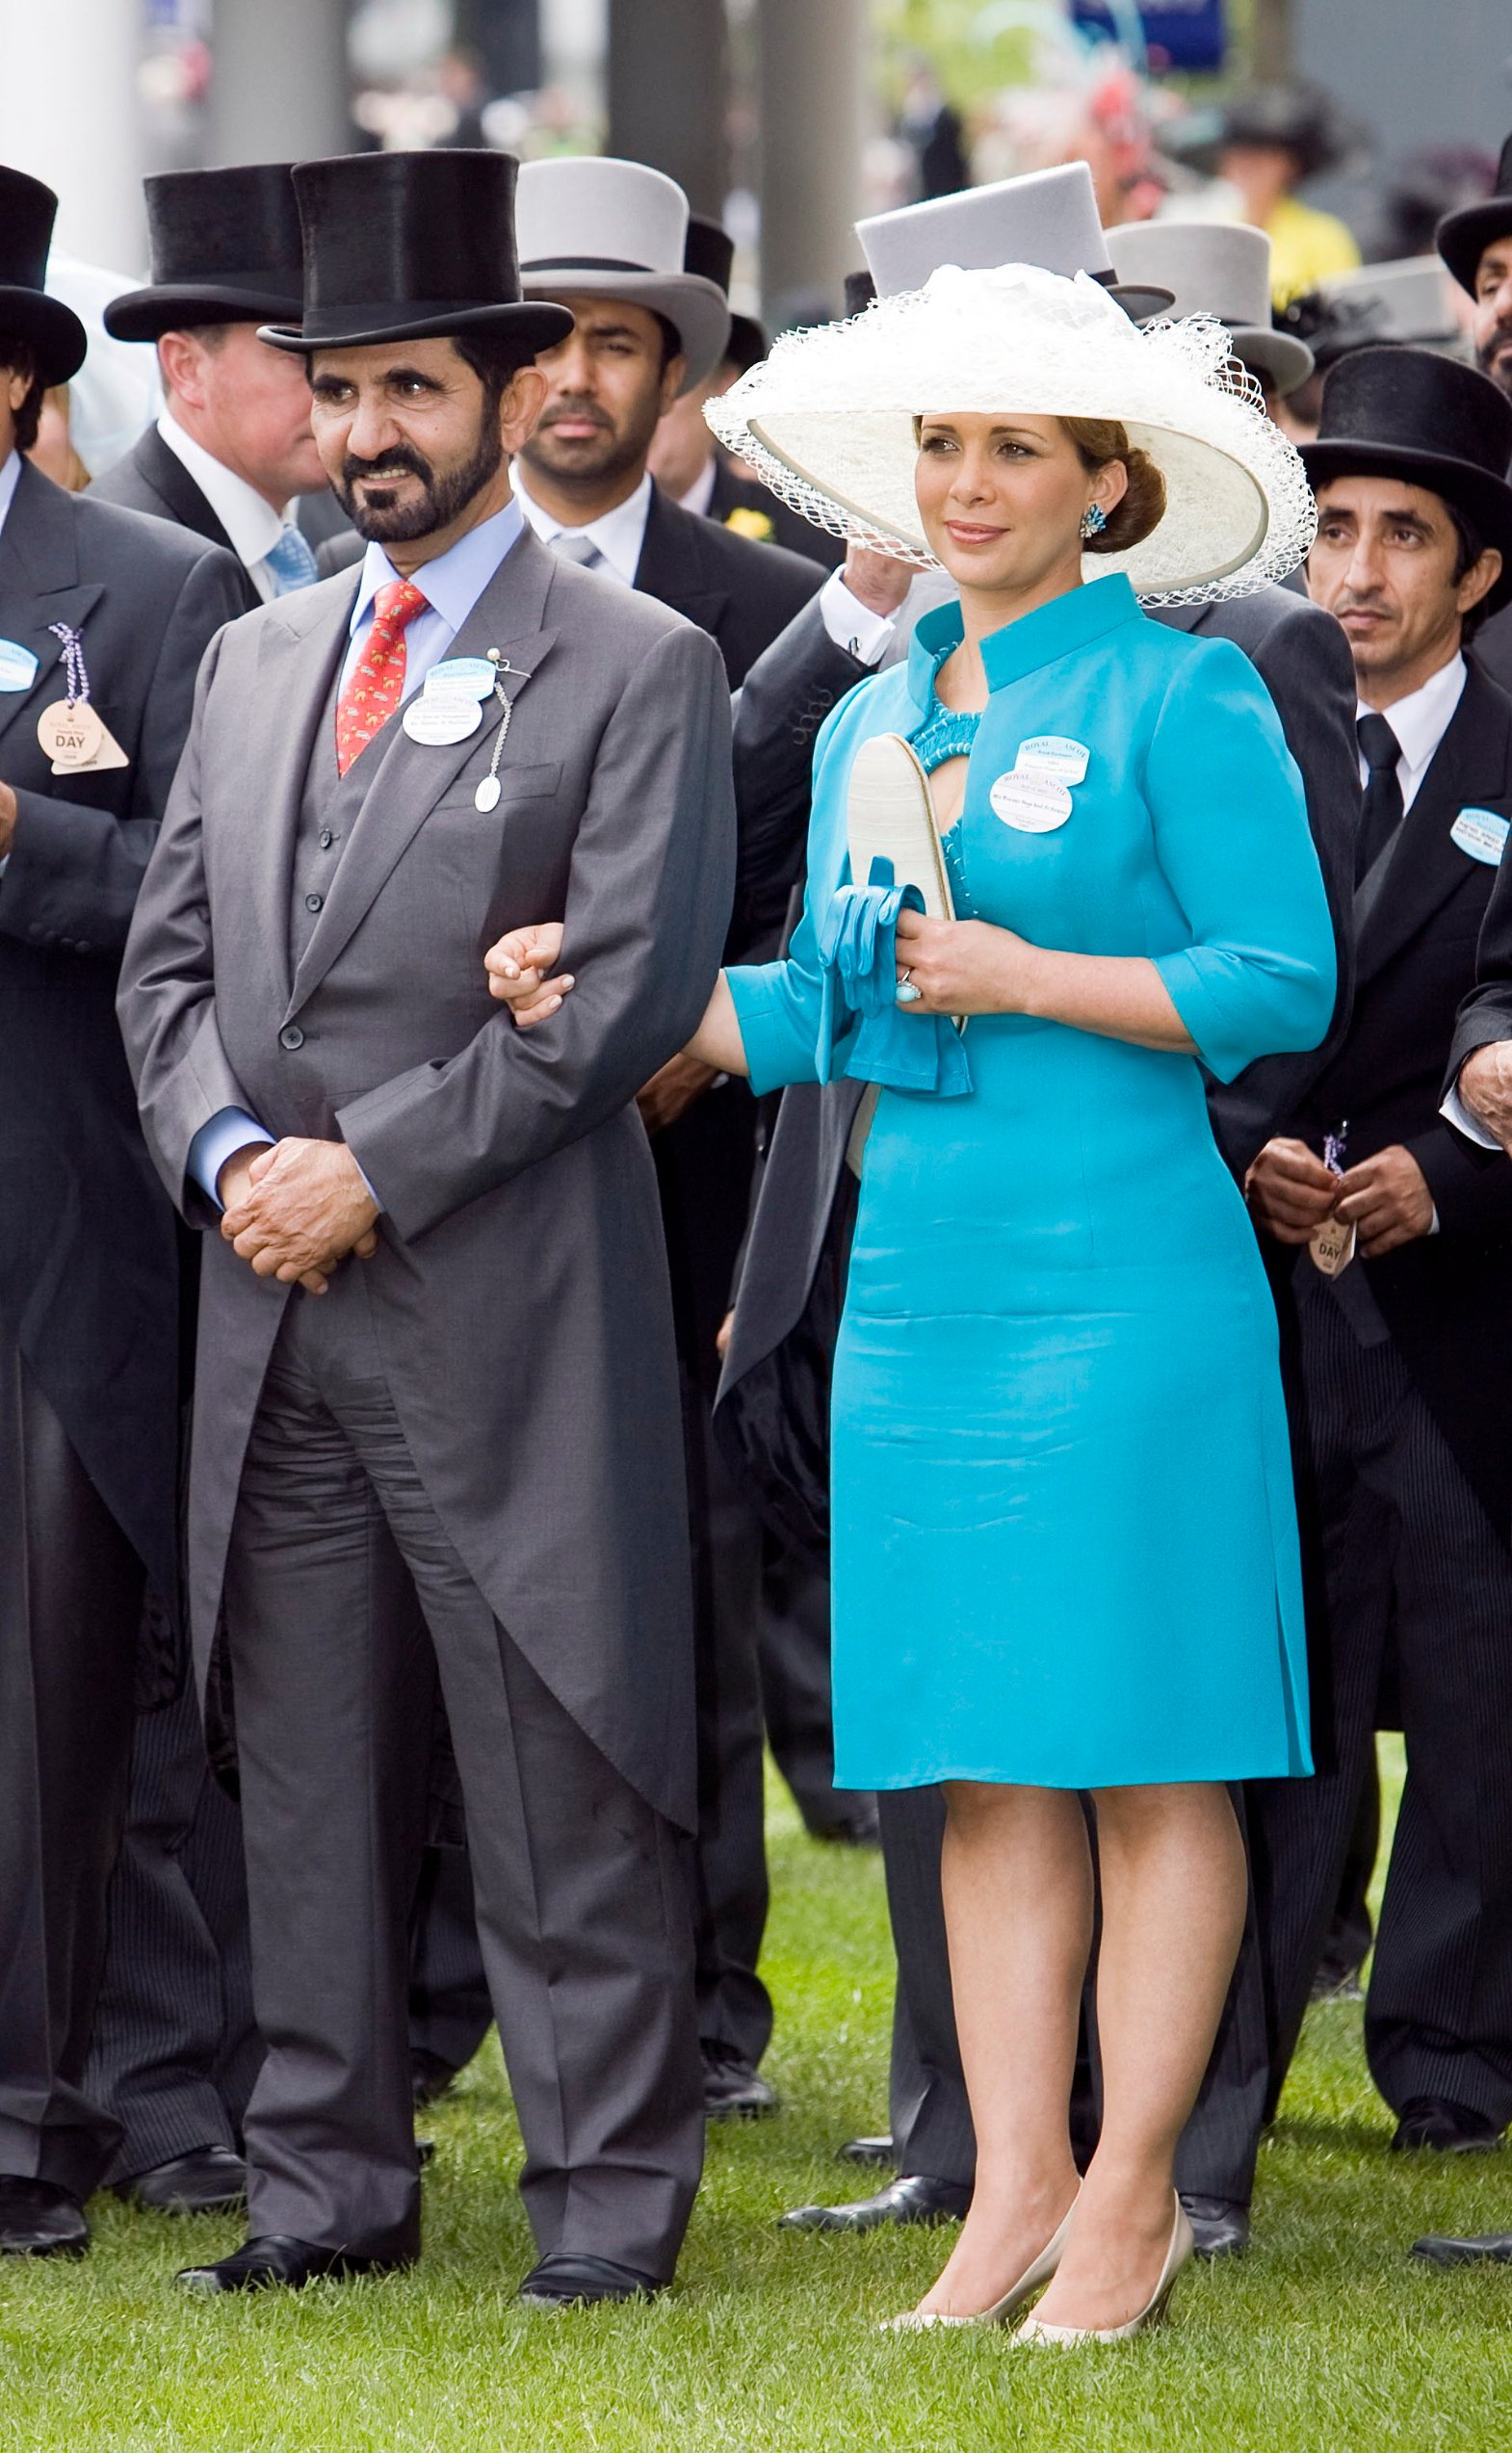 File photo - Dubai ruler Sheikh Mohammed bin Rashed Al Maktoum and wife Princess Haya Bint Al Hussein at the Ladies Day at Royal Ascot Meeting 2009 in Ascot, UK on June 18, 2009. The younger wife of the ruler of Dubai, the billionaire race horse owner Sheikh Mohammed bin Rashid al-Maktoum, is believed to be staying in a town house near Kensington Palace after fleeing her marriage. Princess Haya bint al-Hussein, 45, has not been seen in public for weeks. One half of one of the sporting worlds most celebrated couples, she failed to appear at Royal Ascot last month with her husband., Image: 453480147, License: Rights-managed, Restrictions: , Model Release: no, Credit line: Profimedia, Abaca Press